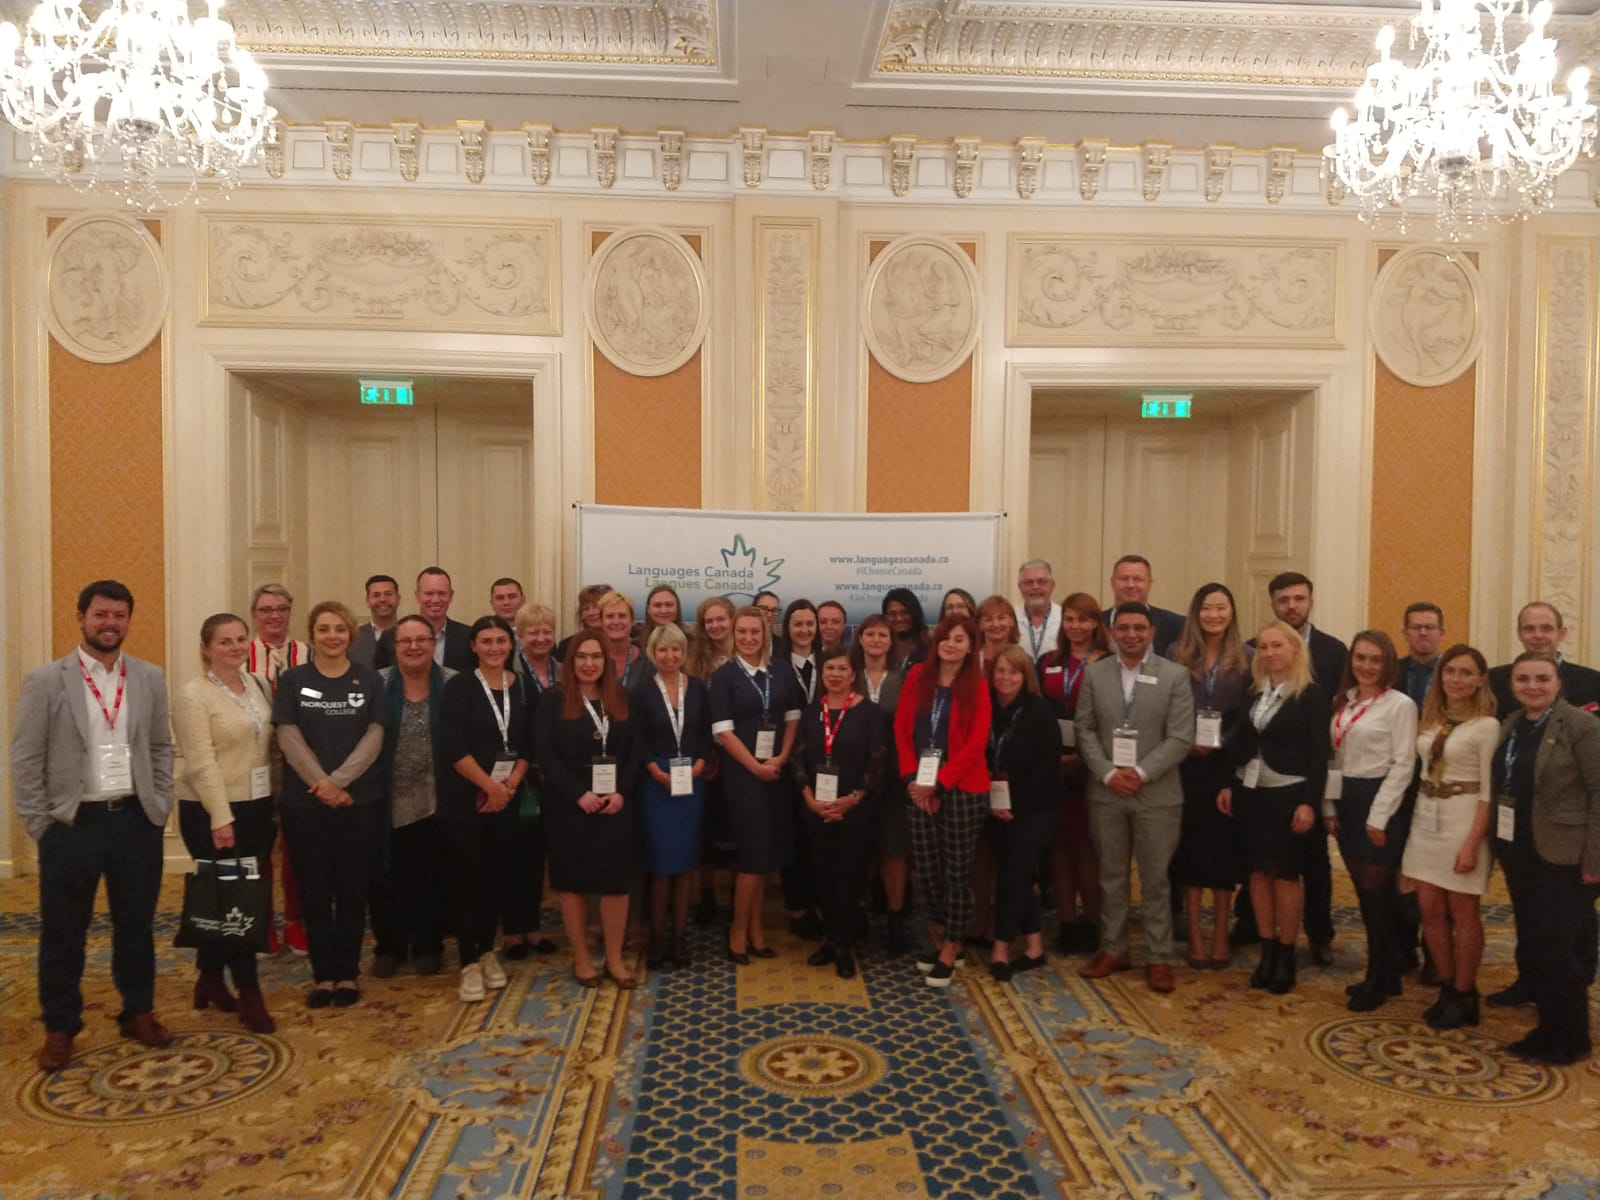 Languages Canada completes successful trade mission to Russia and Ukraine